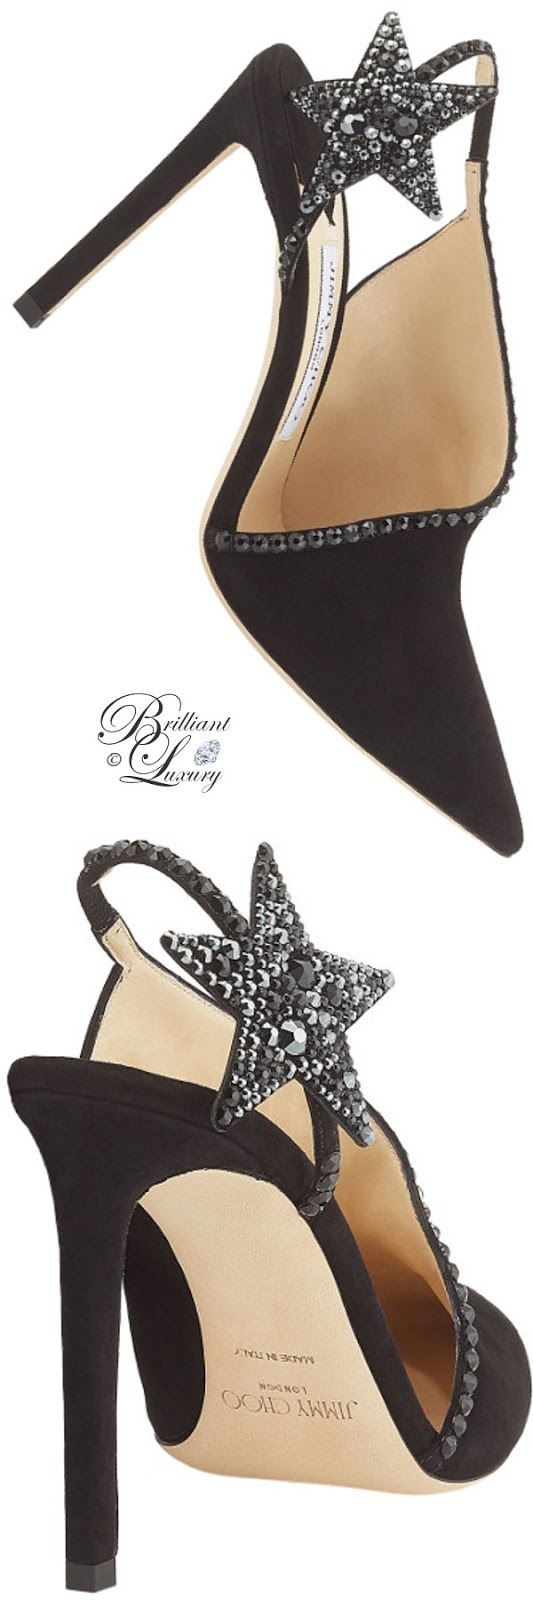 optimized pins Brilliant Luxury ♦ Jimmy Choo Lucette Black Suede Pumps with Hotfix Crystals #brilliantluxury